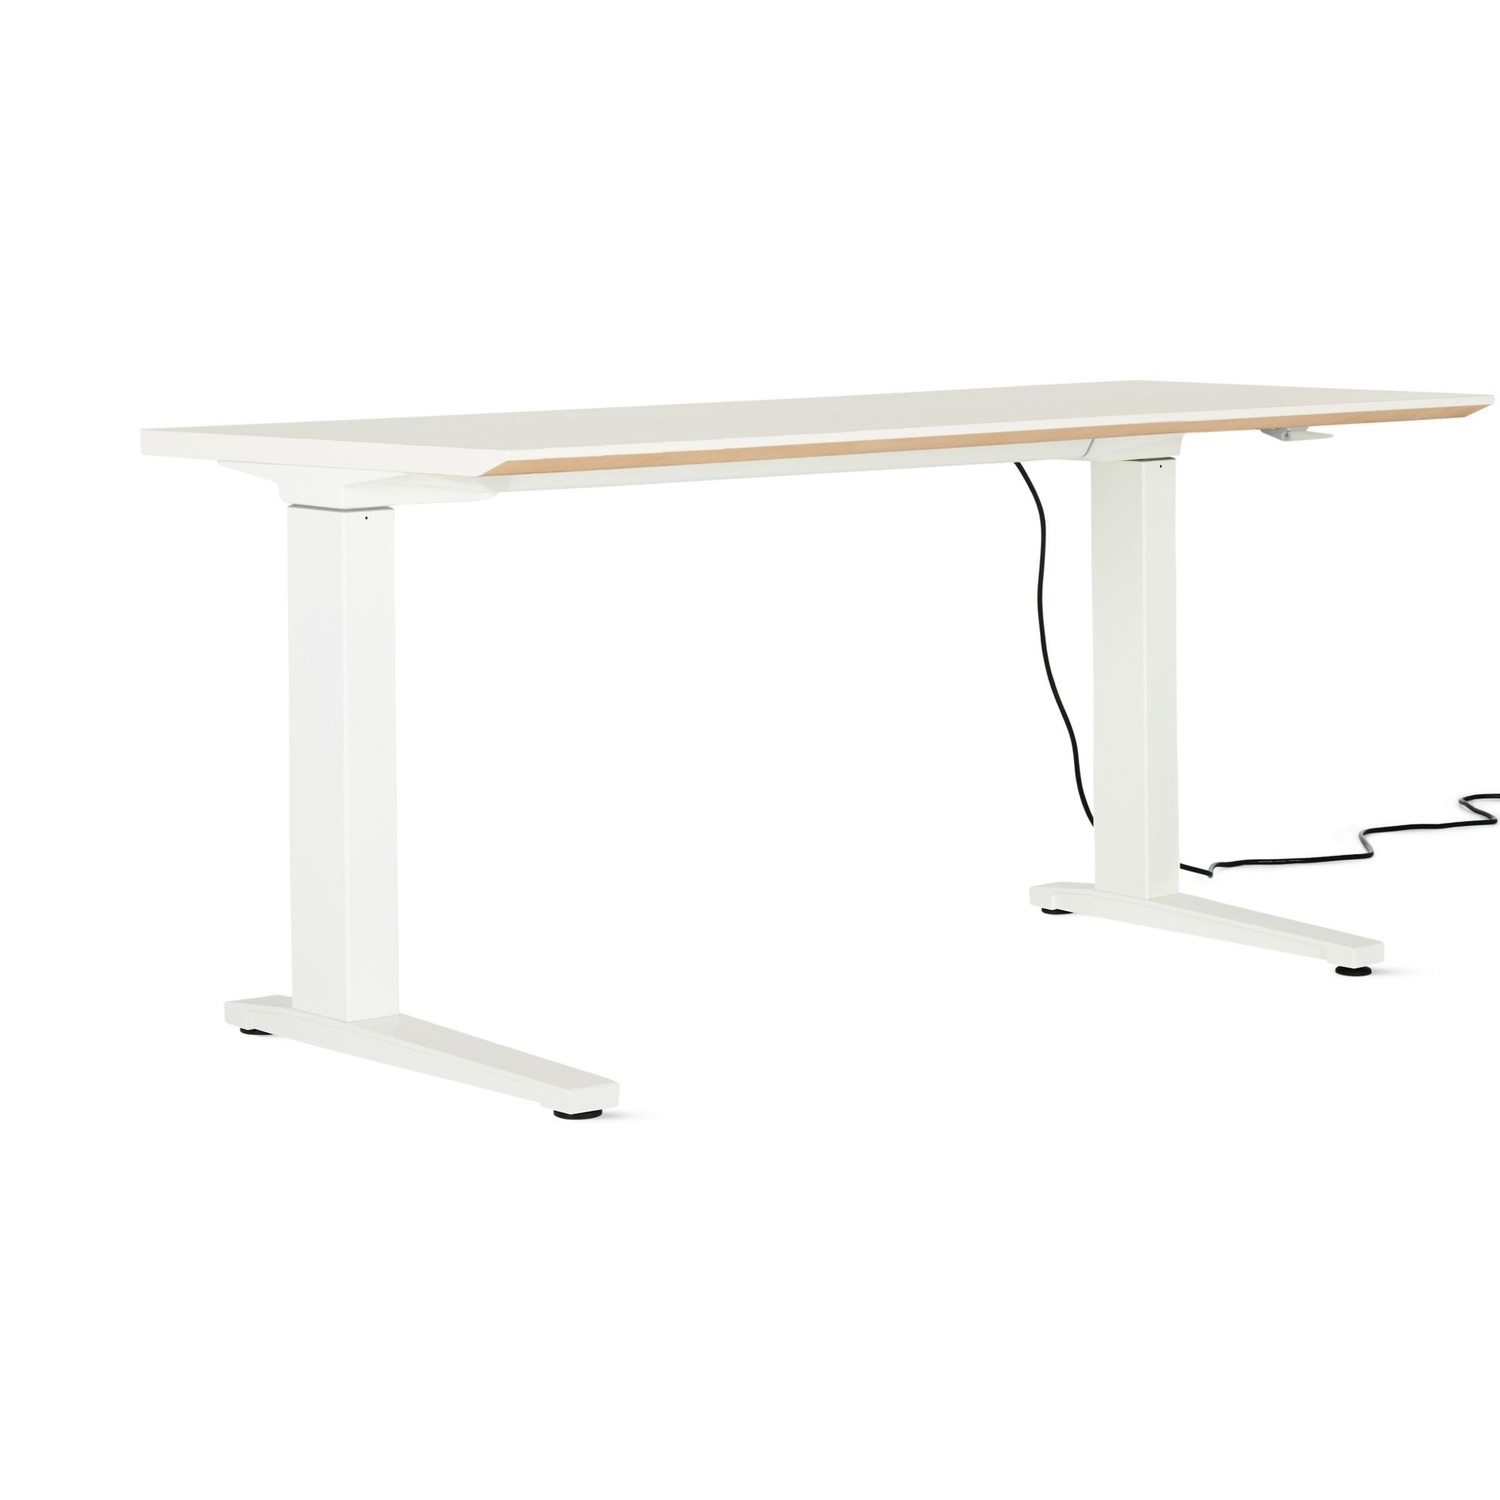 Design Within Reach Renew Sit-to-Stand Desk - image-6